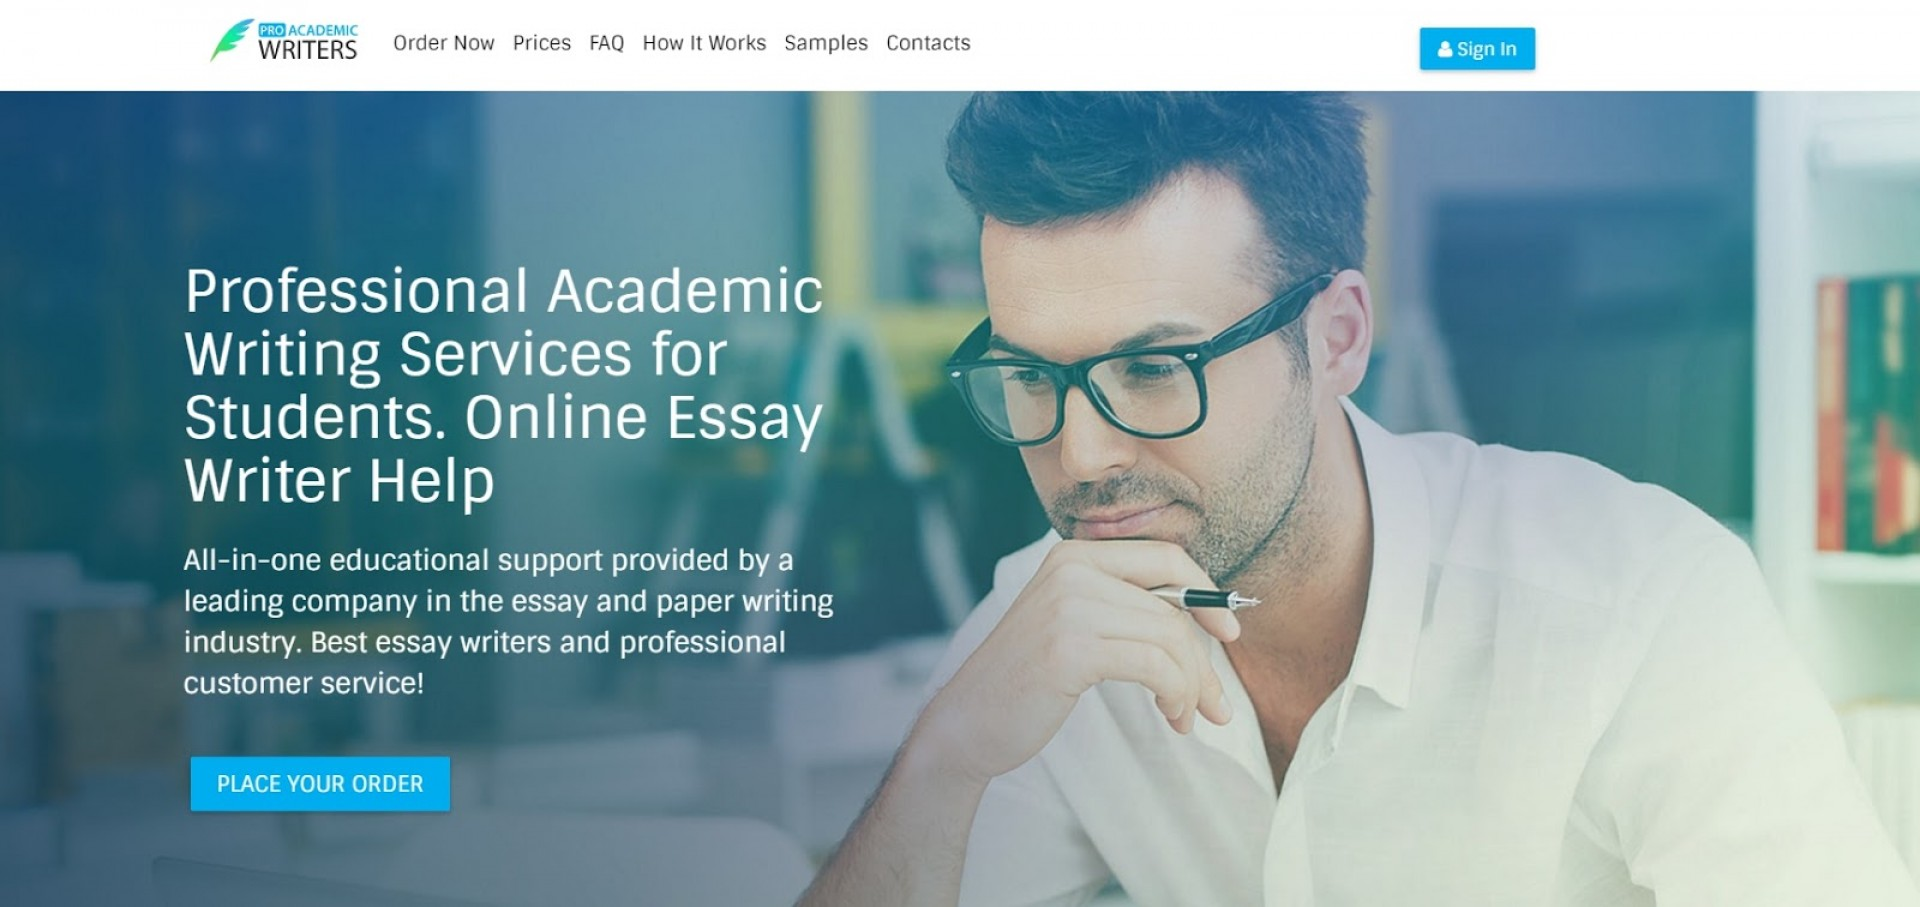 005 Pro Academic Writers Essay Writing Service Wondrous Free Uk Reviews Forum Best 1920